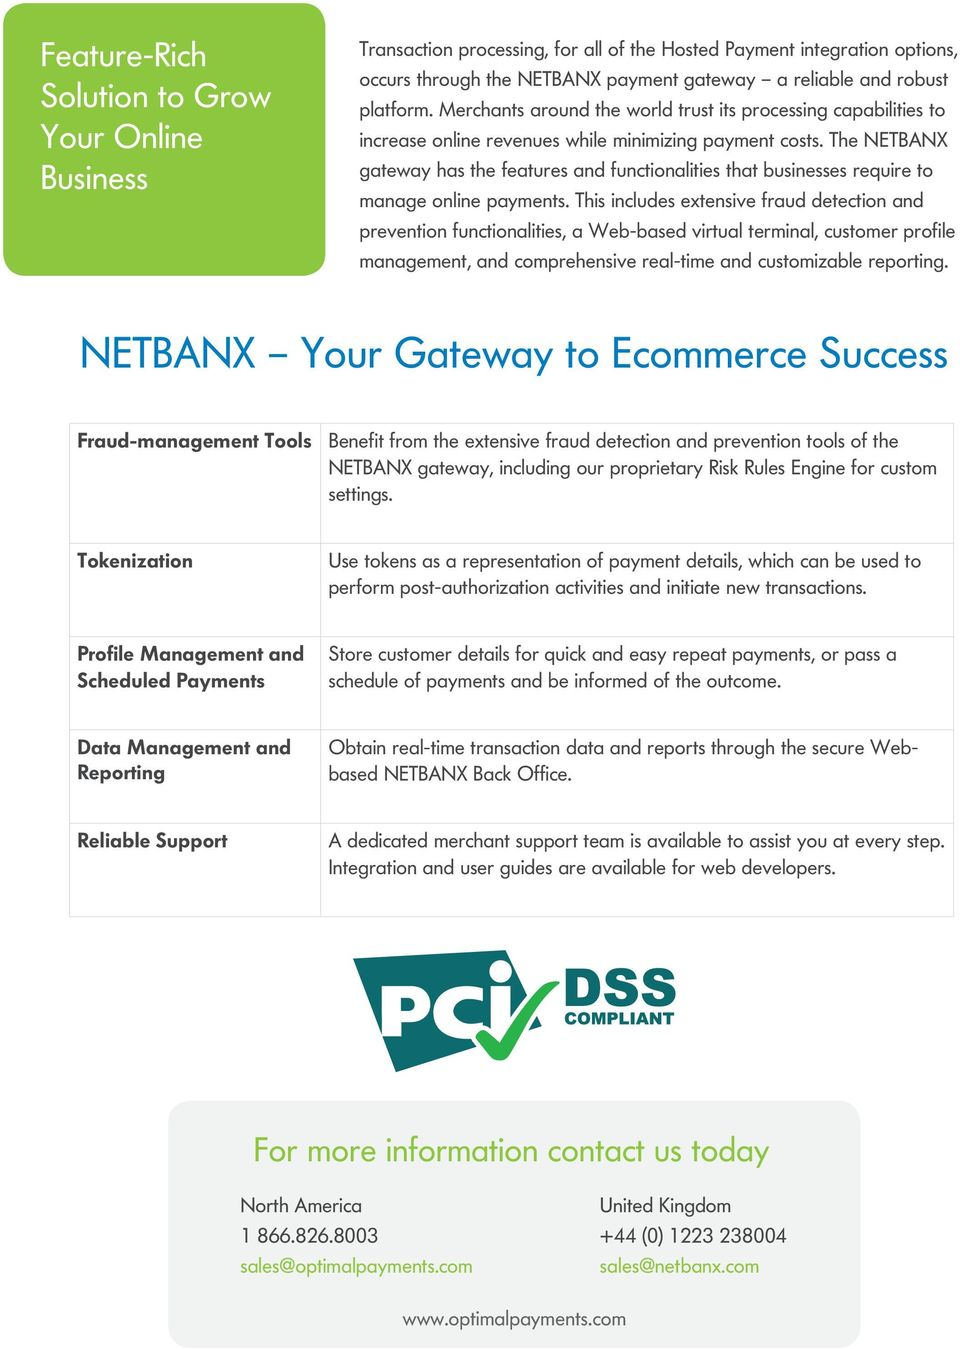 The NETBANX gateway has the features and functionalities that businesses require to manage online payments.